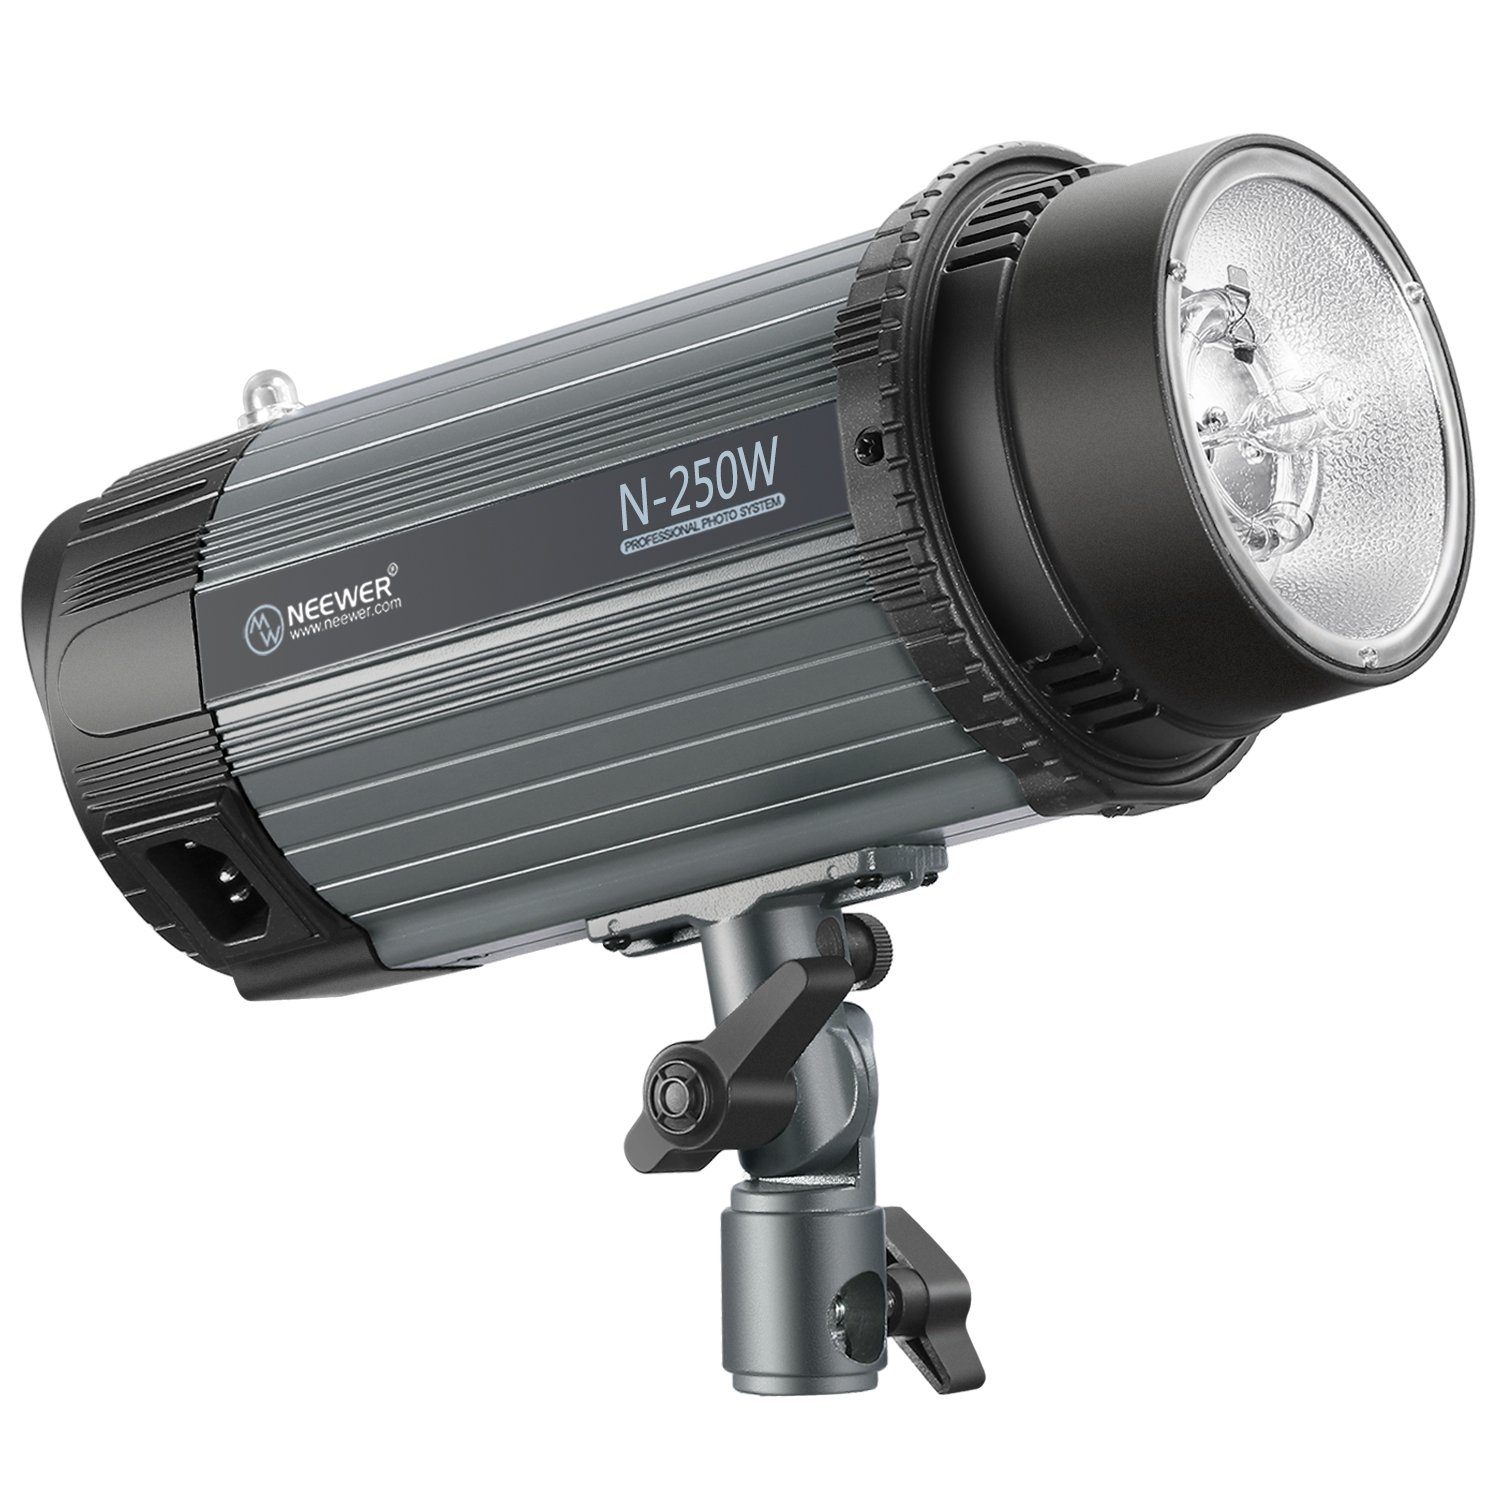 Neewer 250W 5600K Photo Studio Strobe Flash Light Monolight with Modeling Lamp, Aluminium Alloy Professional Speedlite for Indoor Studio Location Model Photography and Portrait Photography (N-250W) 10089661@@##1